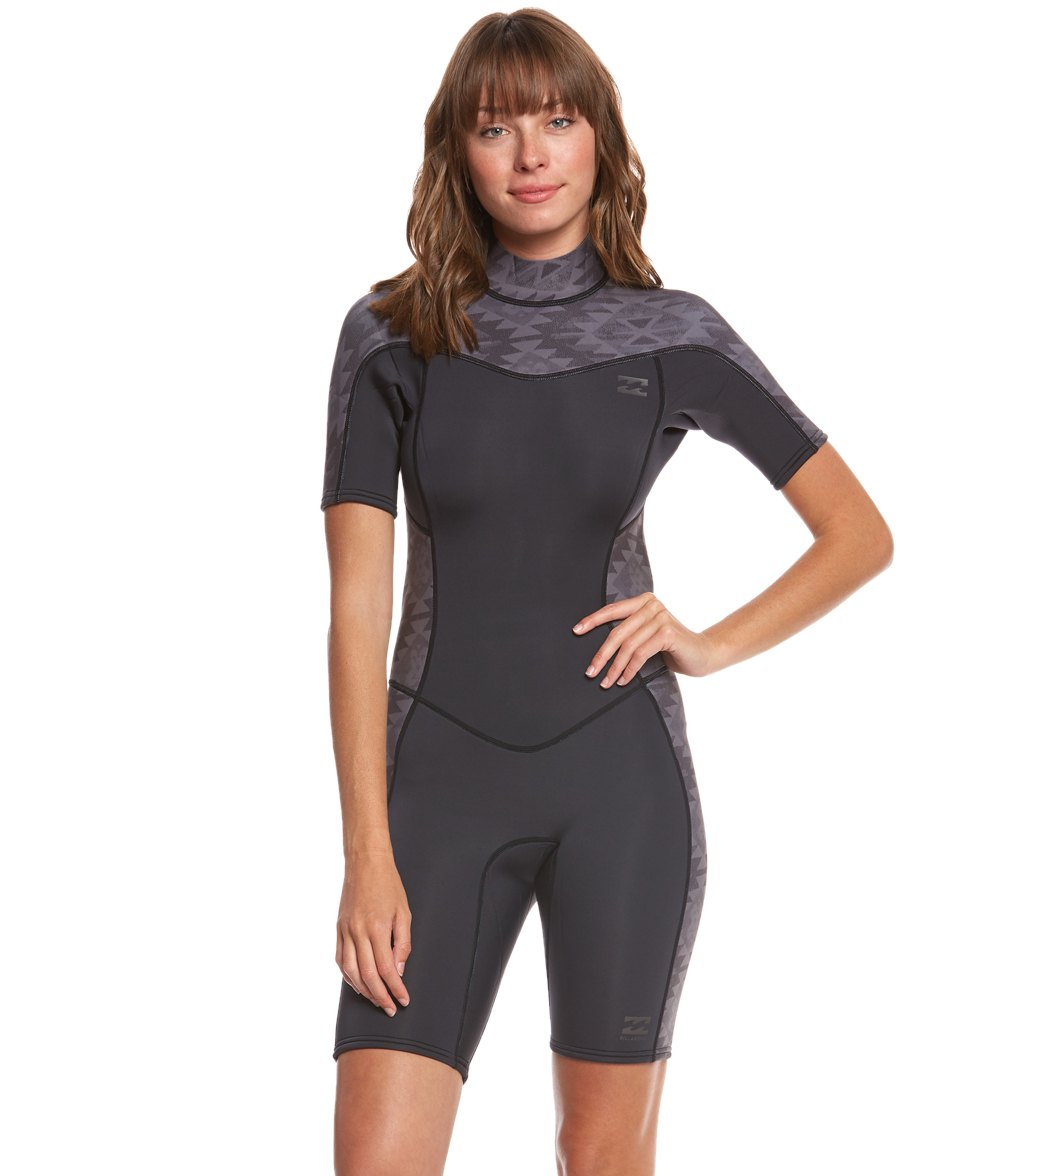 Billabong Women s 2 2mm Synergy Back Zip Spring Suit Wetsuit at ... 895bbb76c